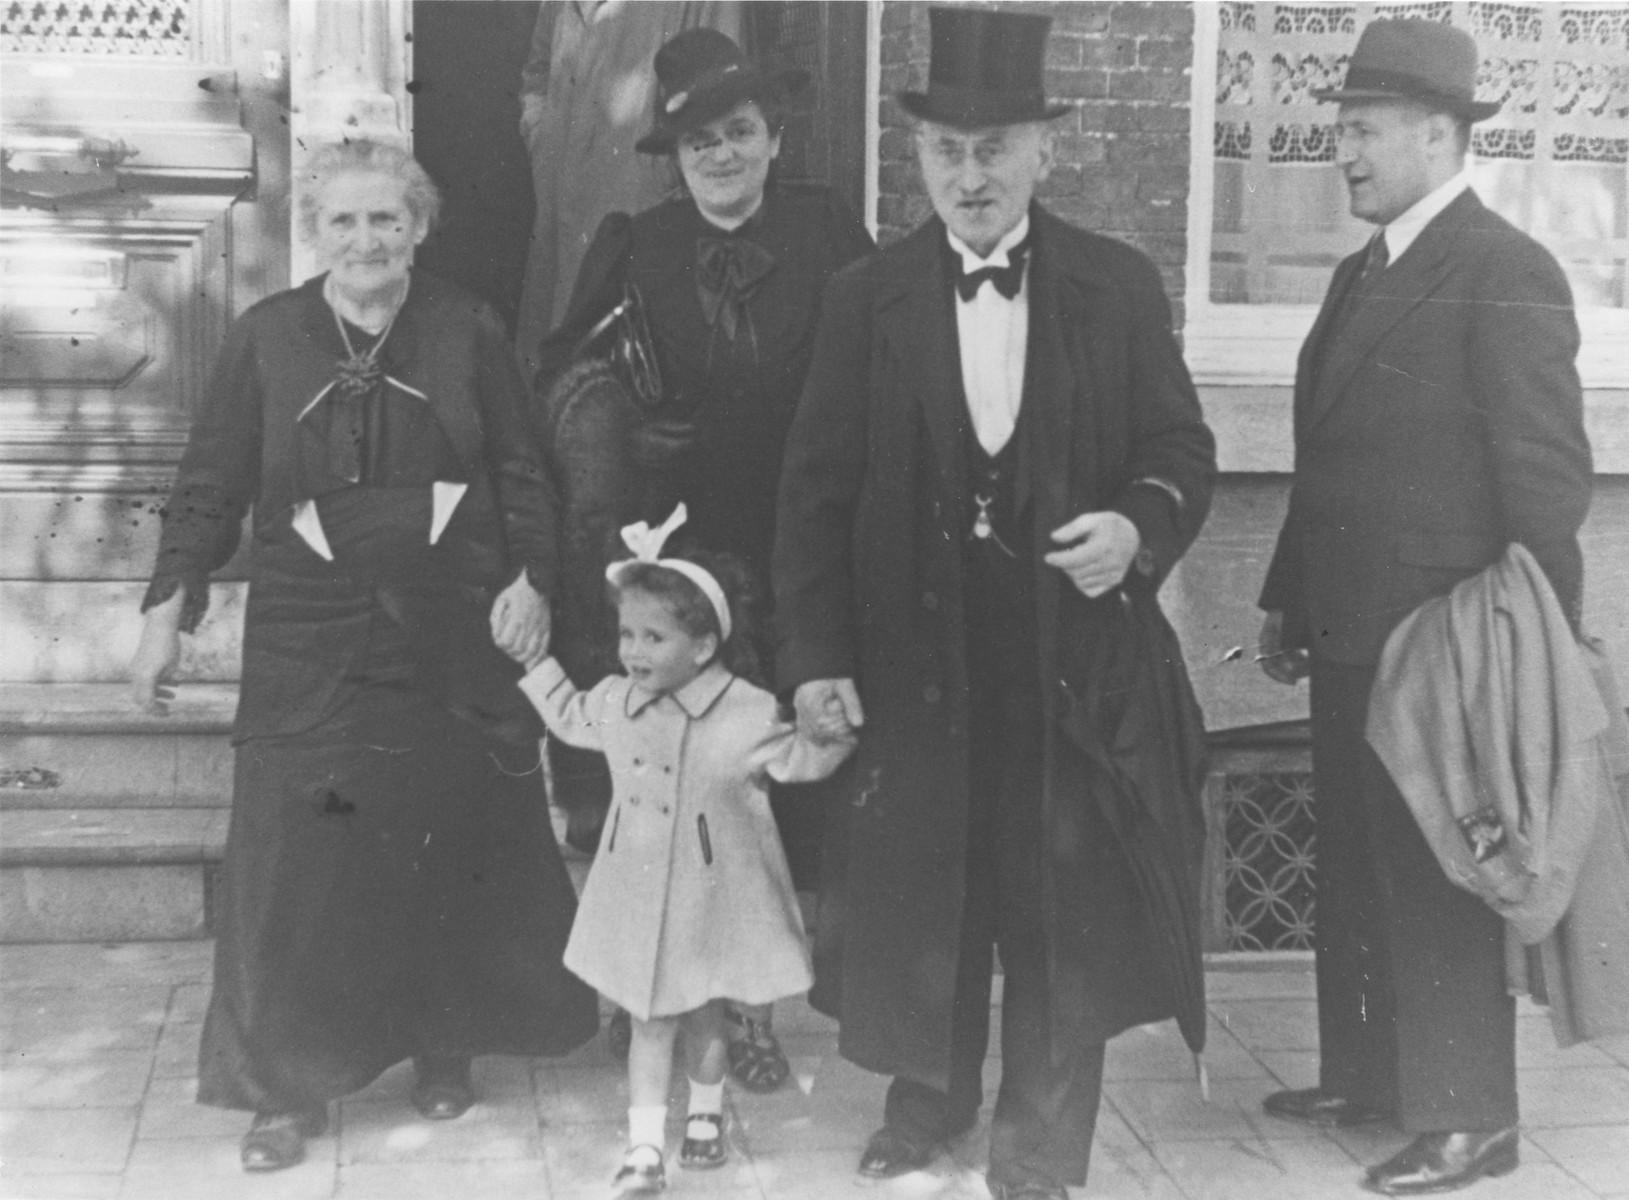 Elizabeth Reiss, a young Jewish girl, leaves a house accompanied by her maternal grandmother, Renee Rubens, great grandparents, and great-uncle, Jaap Trompeter.